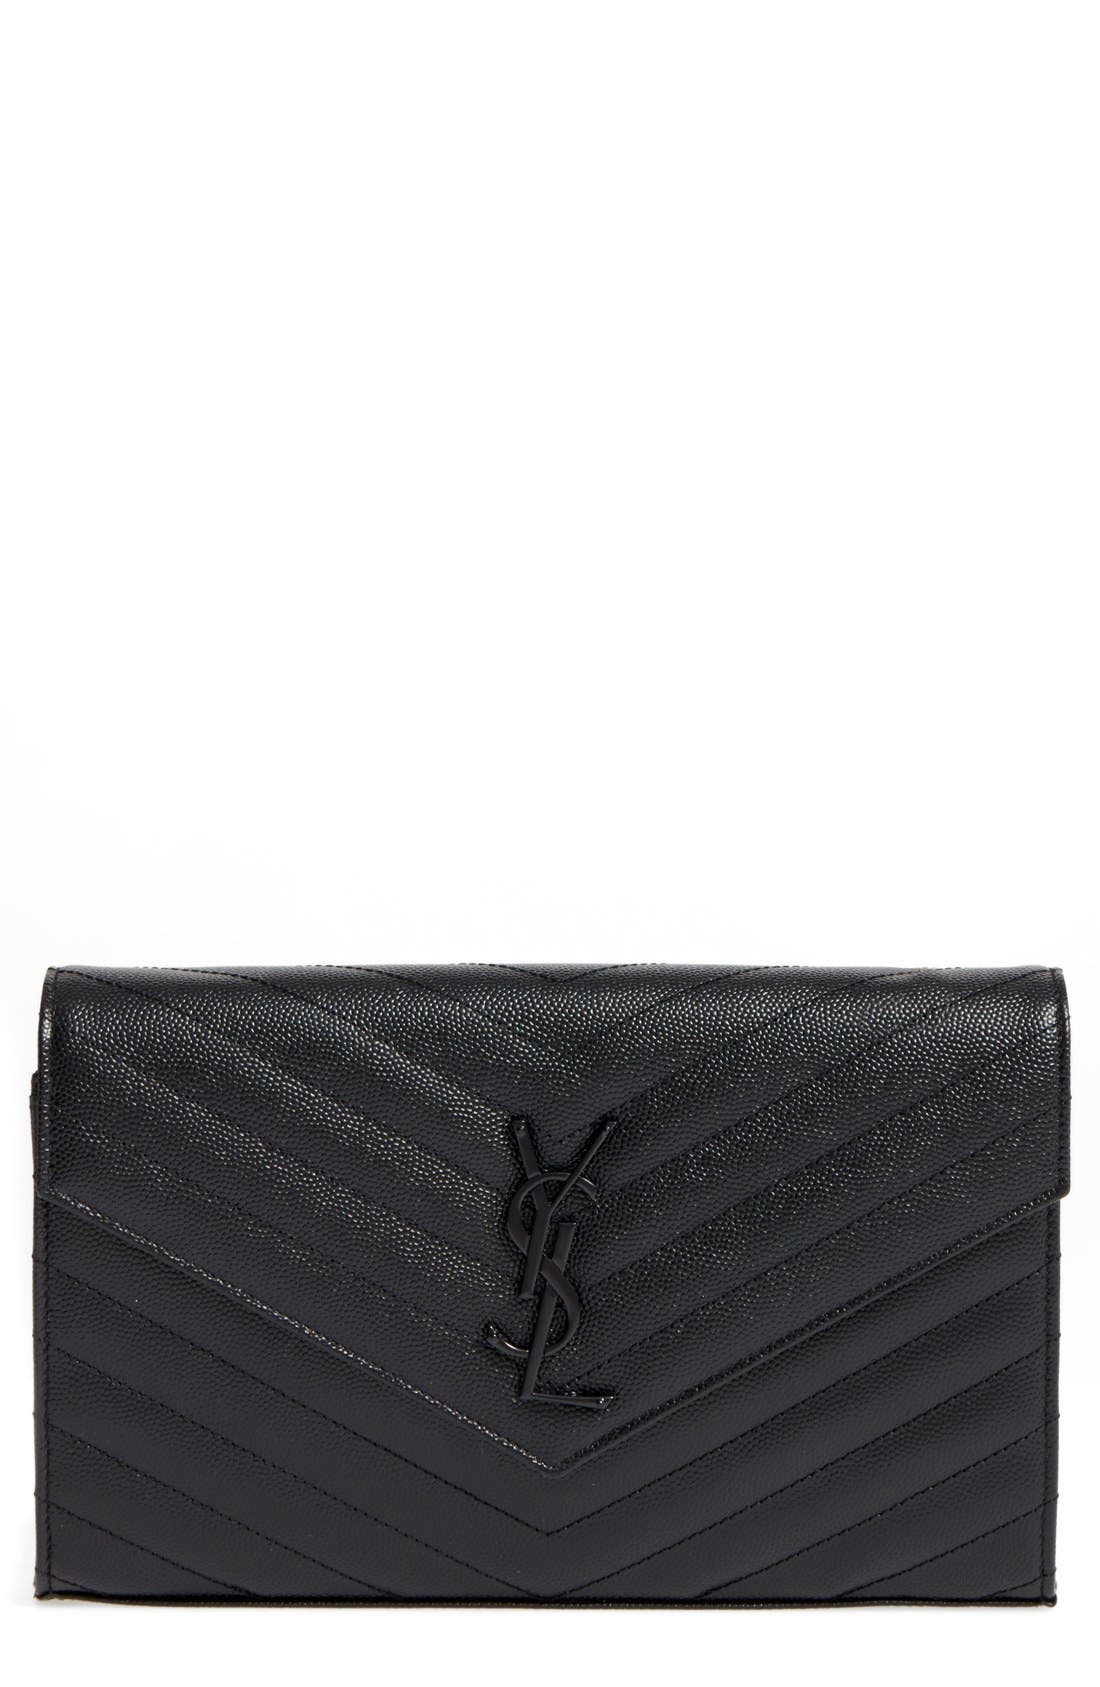 SAINT LAURENT Monogram Quilted Leather Wallet on a